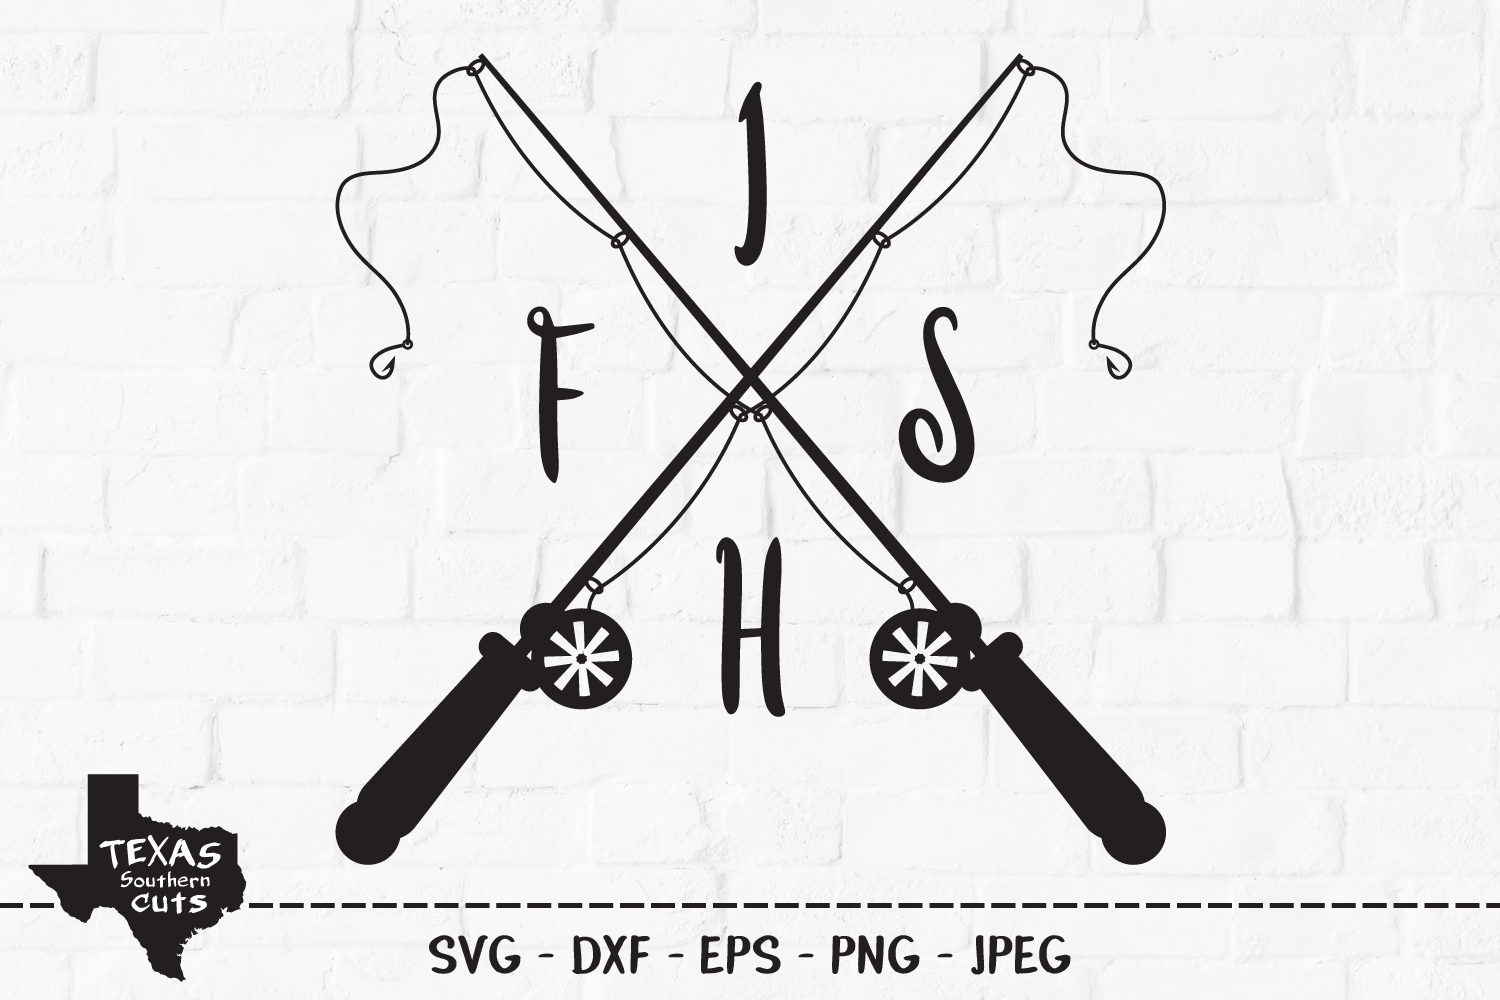 Download Free Fish Fishing Shirt Design Graphic By Texassoutherncuts for Cricut Explore, Silhouette and other cutting machines.